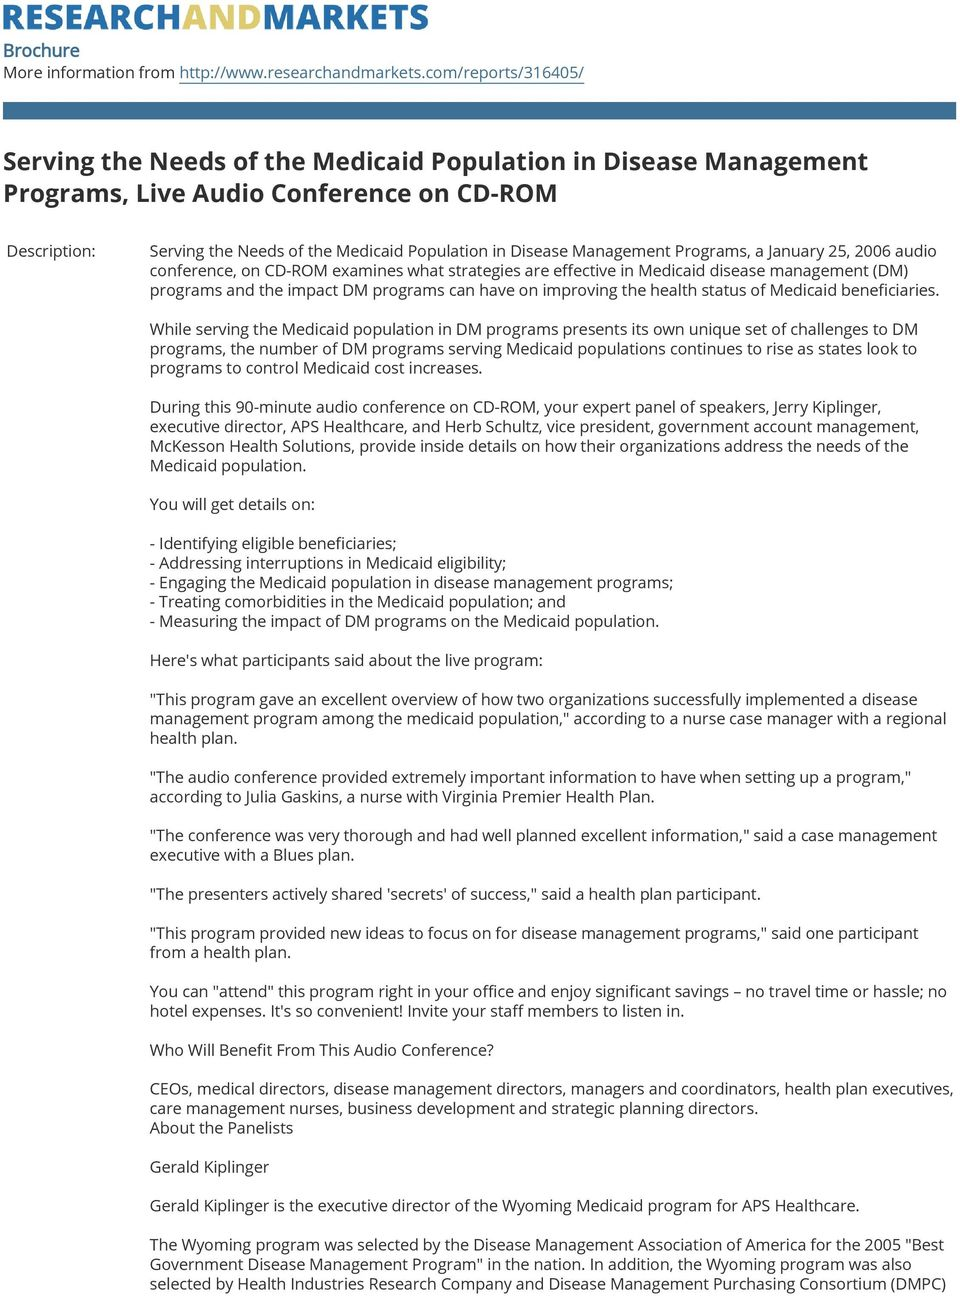 Management Programs, a January 25, 2006 audio conference, on CD-ROM examines what strategies are effective in Medicaid disease management (DM) programs and the impact DM programs can have on